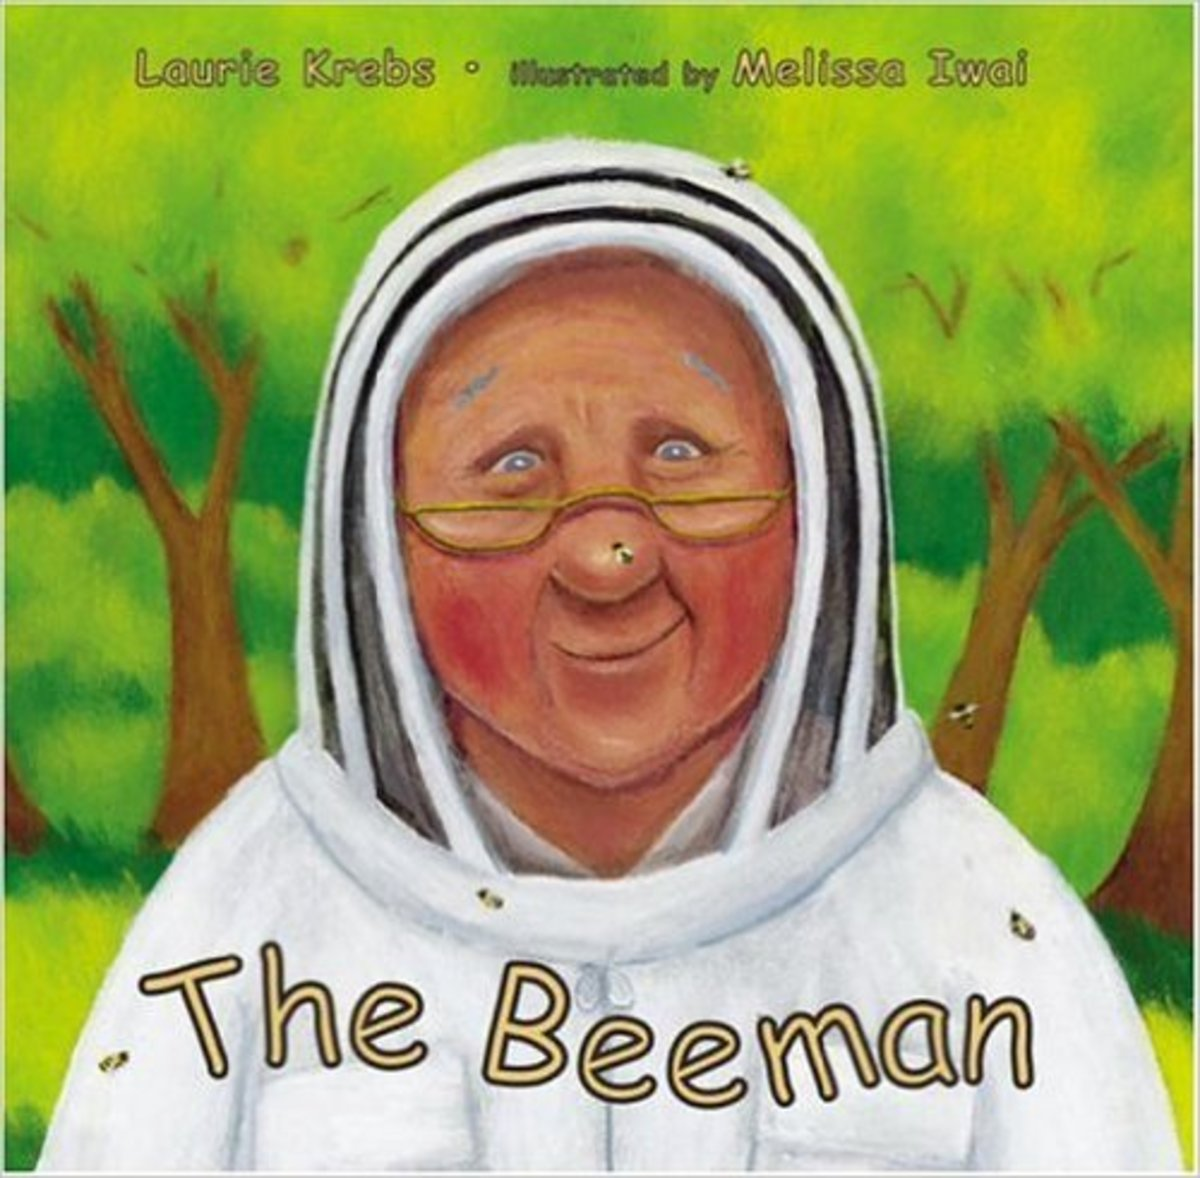 The Beeman by Laurie Krebs - Images came from amazon.com and booksamillion.com.